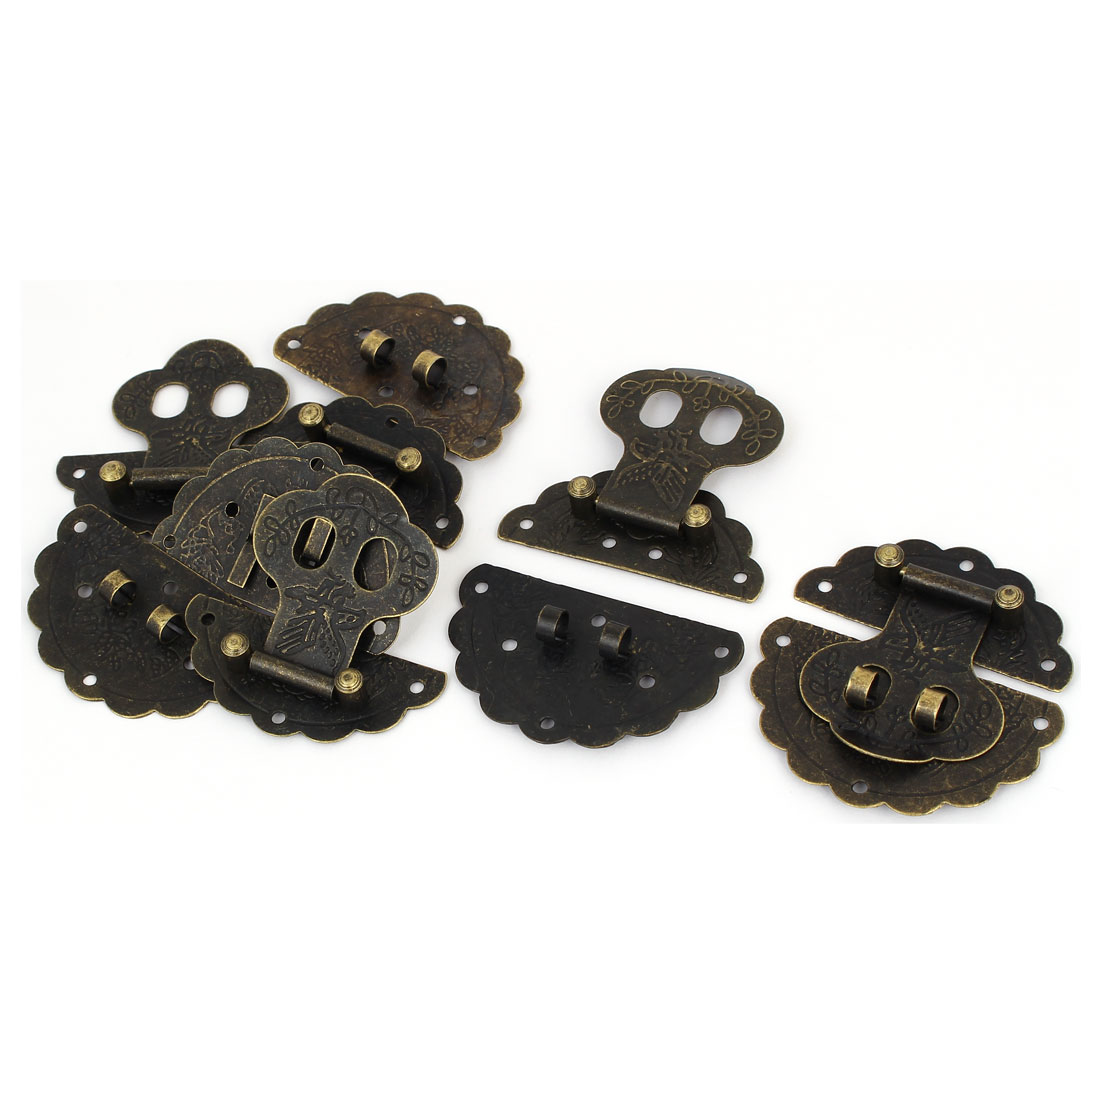 60mm Dia Spring Draw Toggle Latch 5PCS for Chest Box Cabinet Suitcase